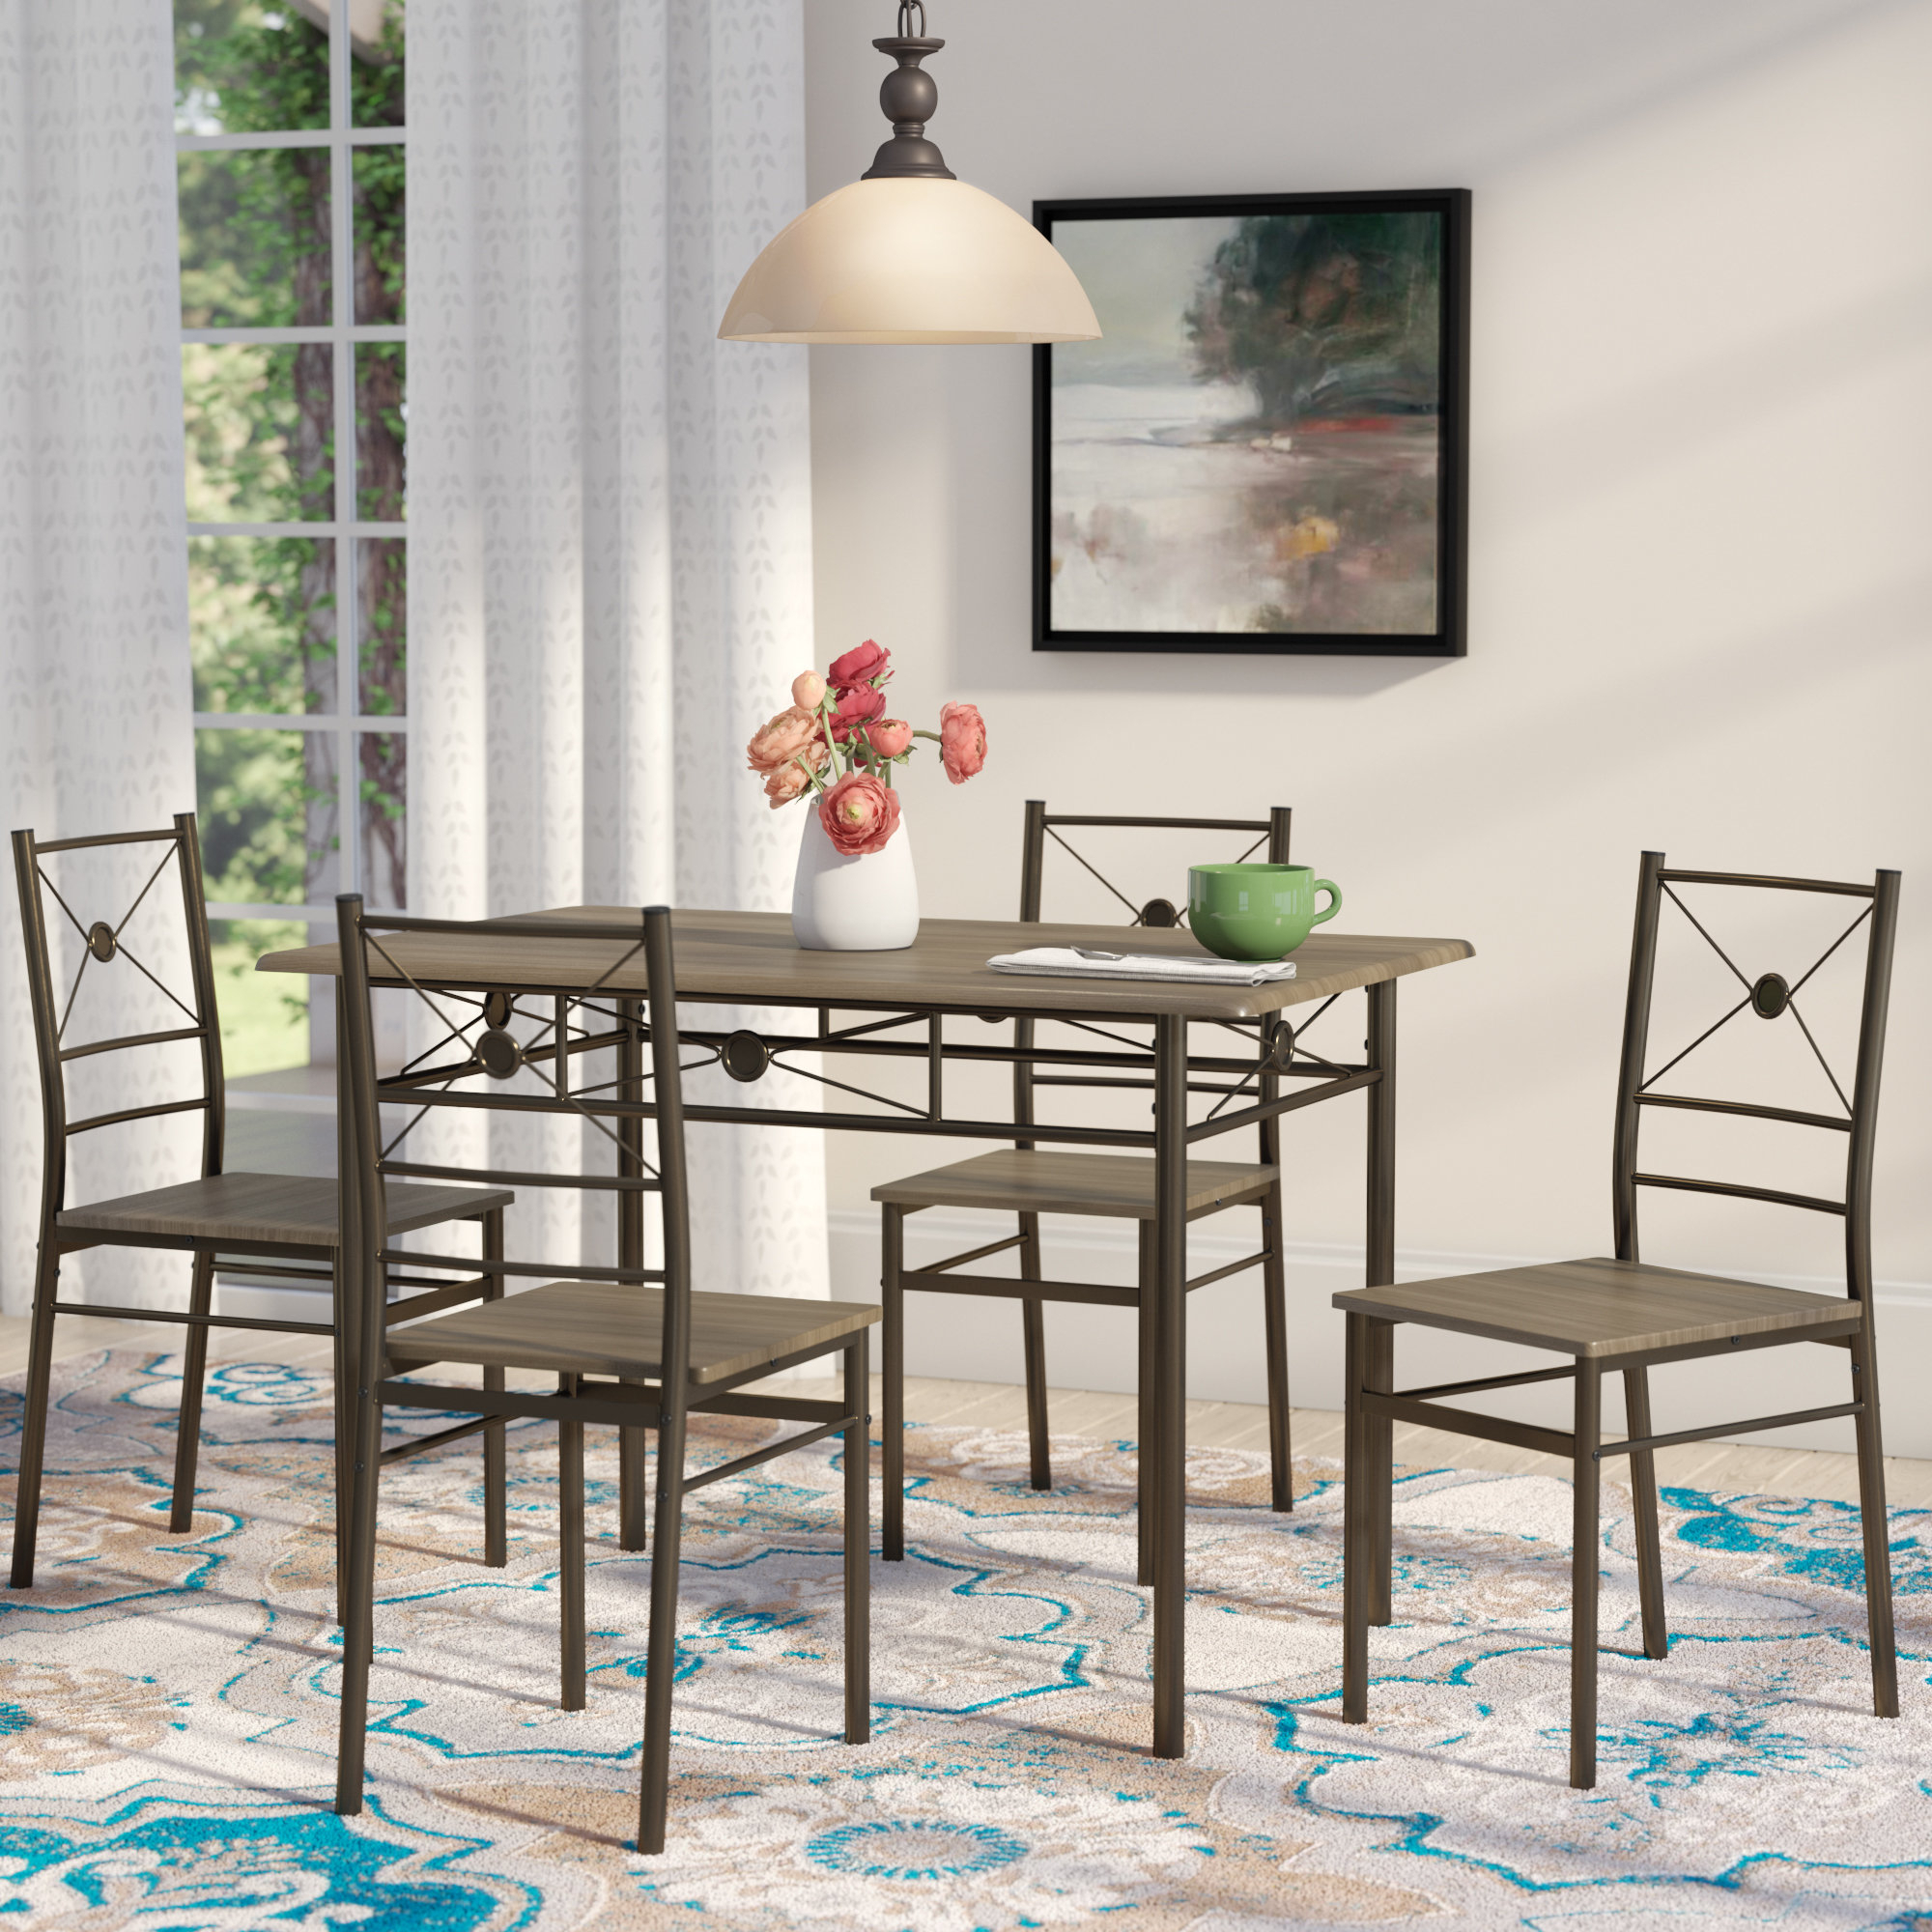 Kieffer 5 Piece Dining Set For Most Recent Stouferberg 5 Piece Dining Sets (View 7 of 20)